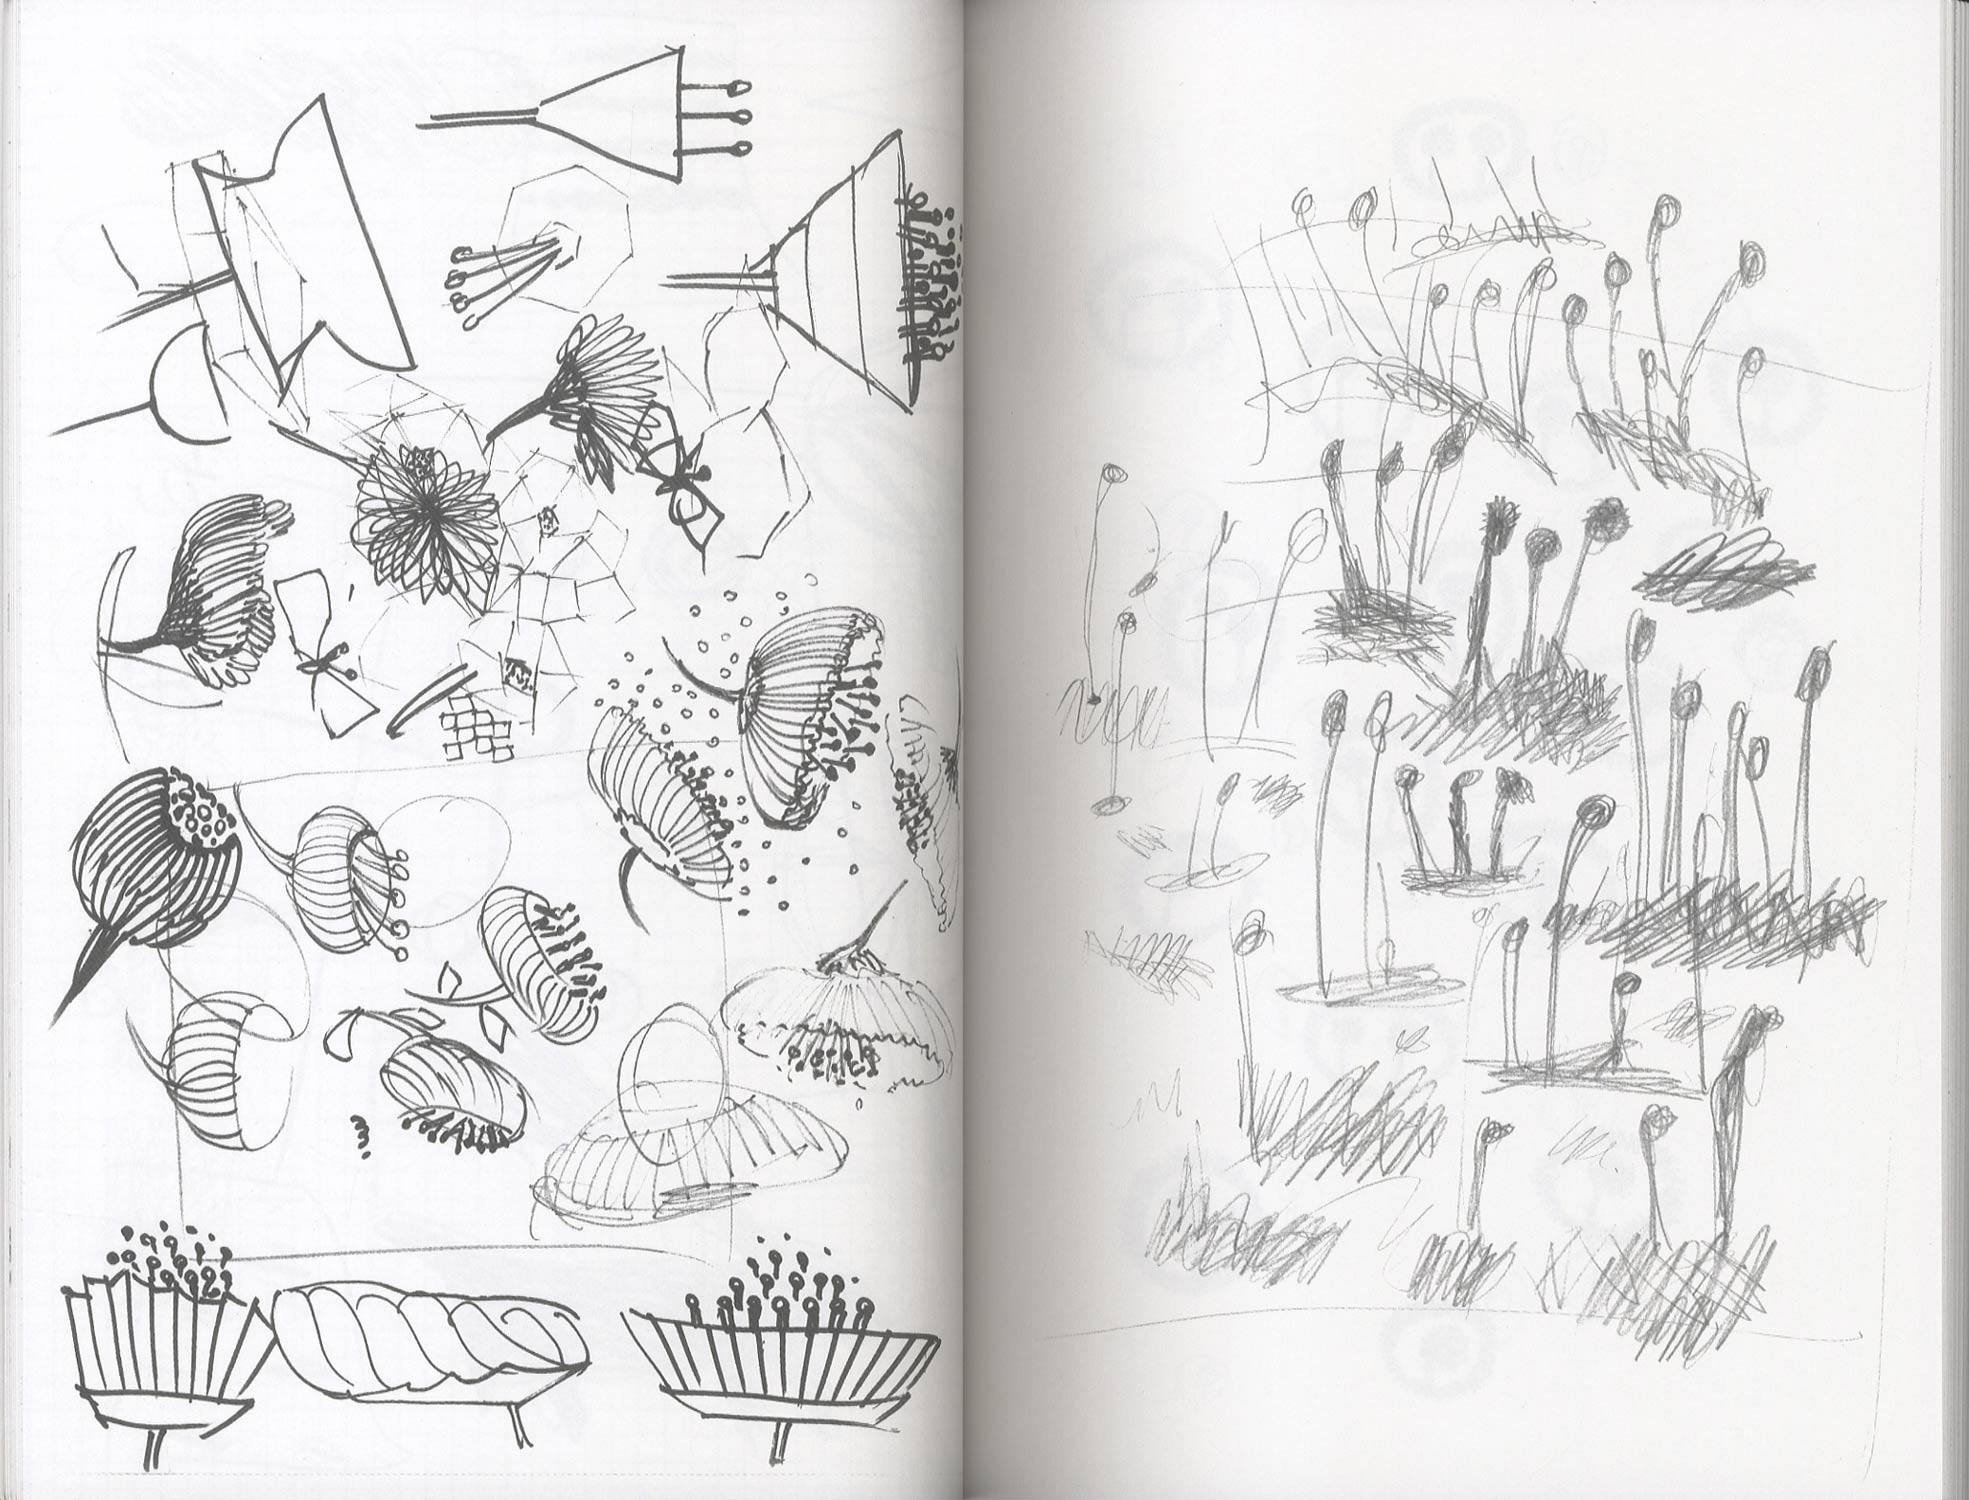 notes[image2]